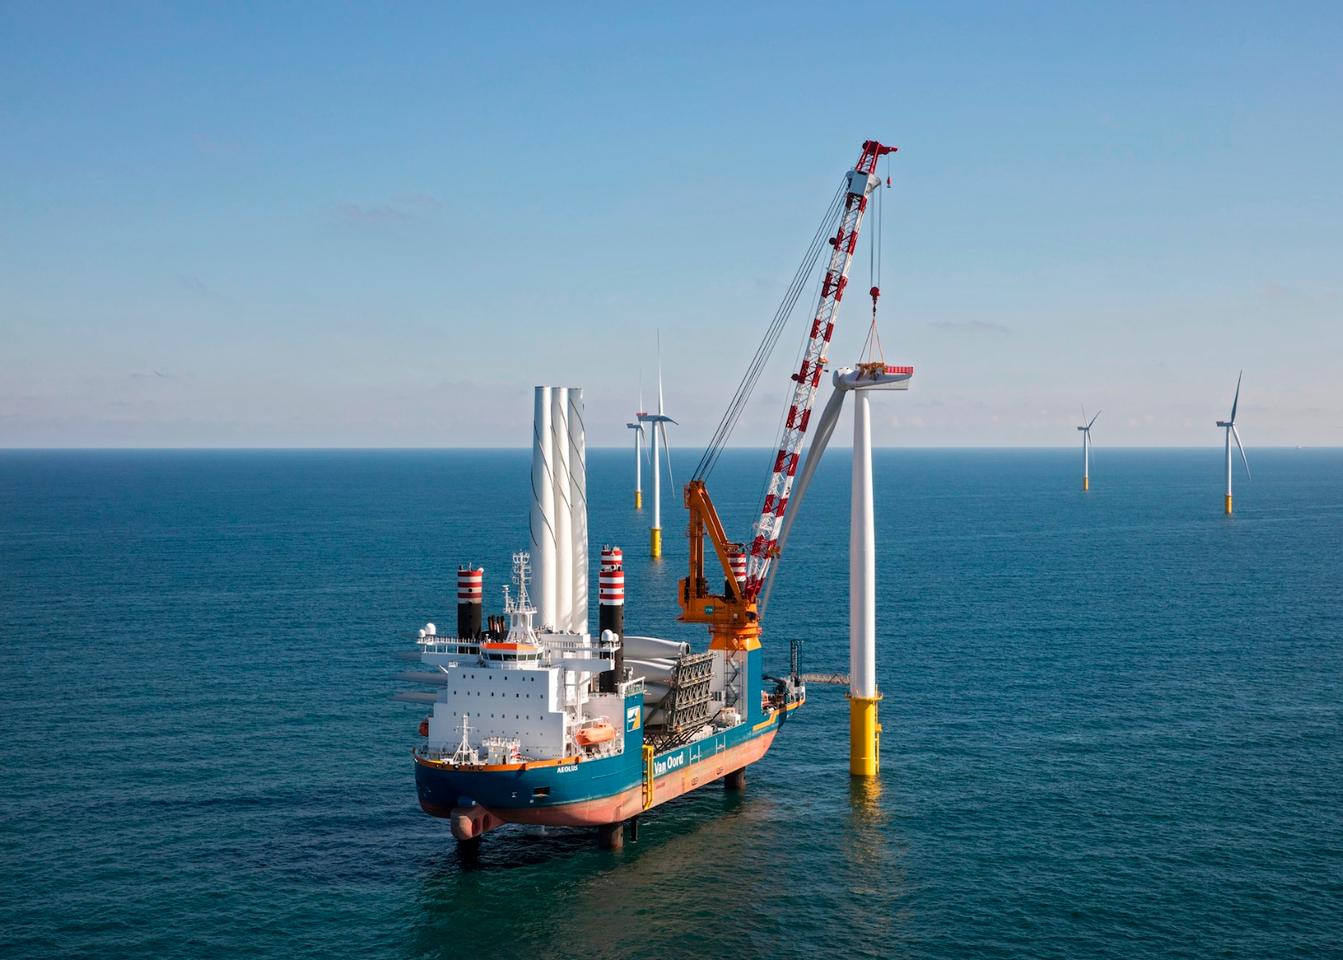 The Gemini wind farm took about two years to build, with Van Oord and Siemens contracted to perform most of the construction